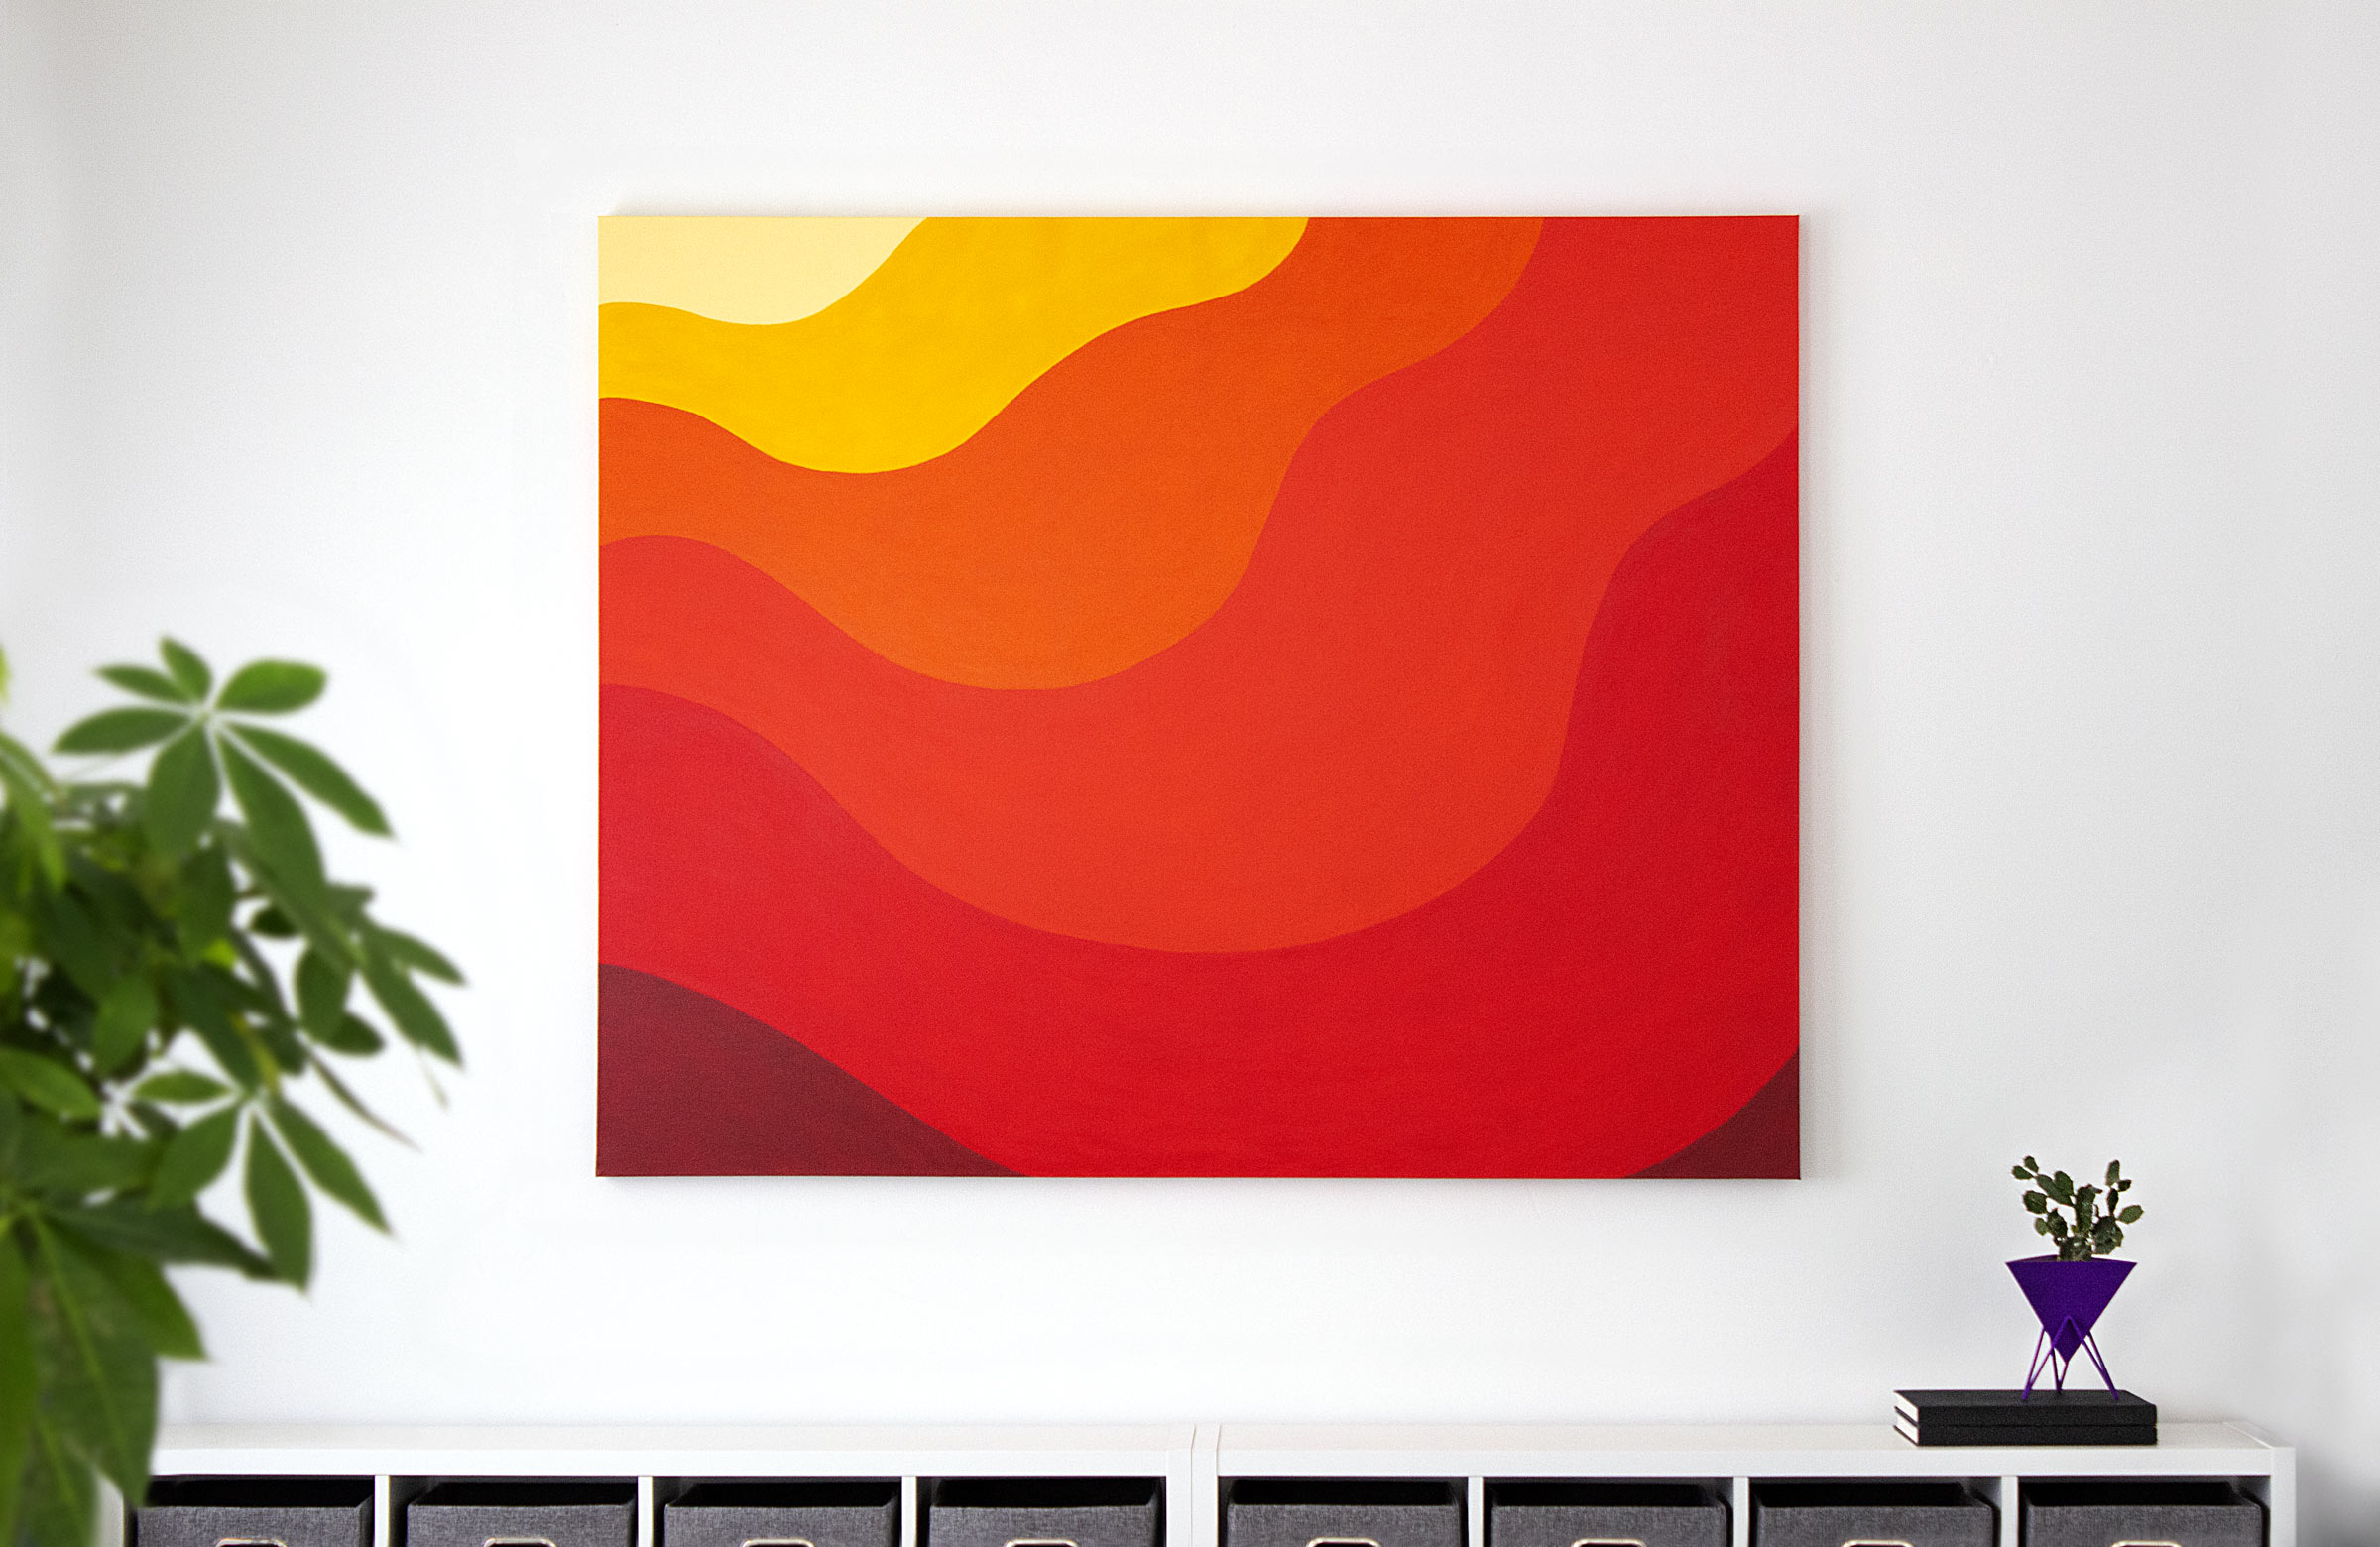 A large canvas painted with a gradation of yellow to orange to read, hanging on a white wall in a modern office.